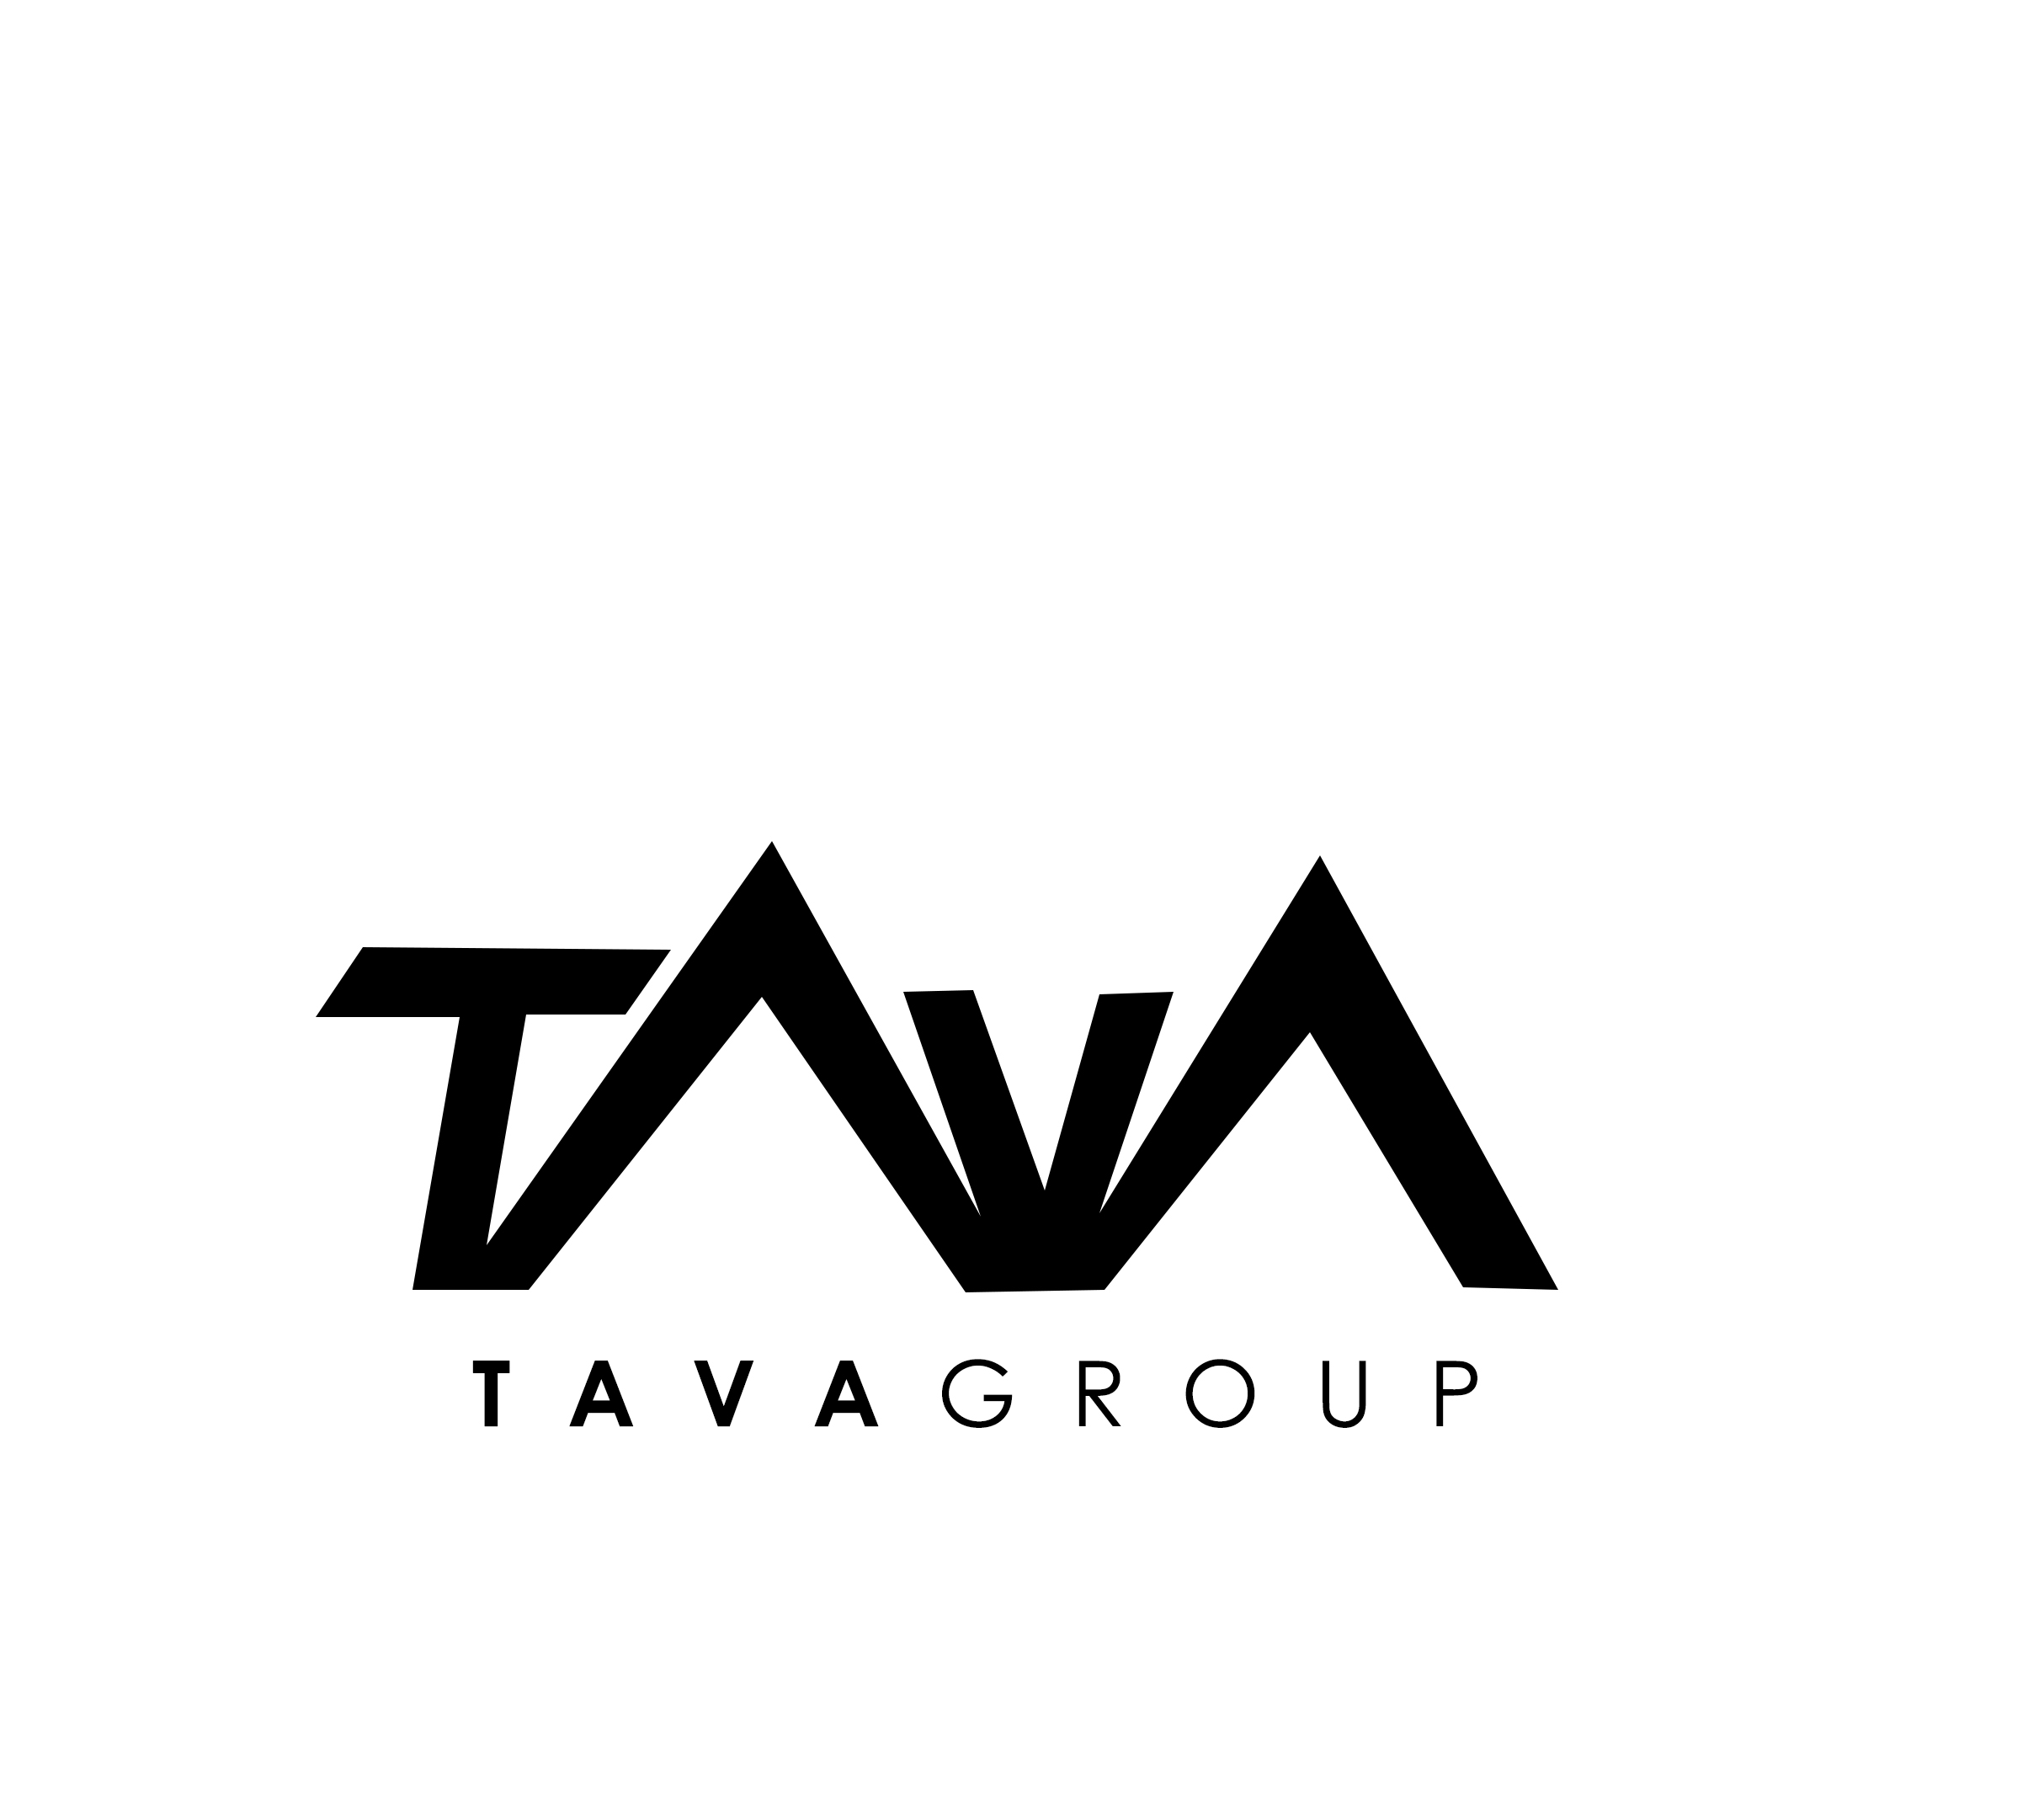 Logo Design by Levi Mae Añana - Entry No. 146 in the Logo Design Contest Creative Logo Design for Tava Group.